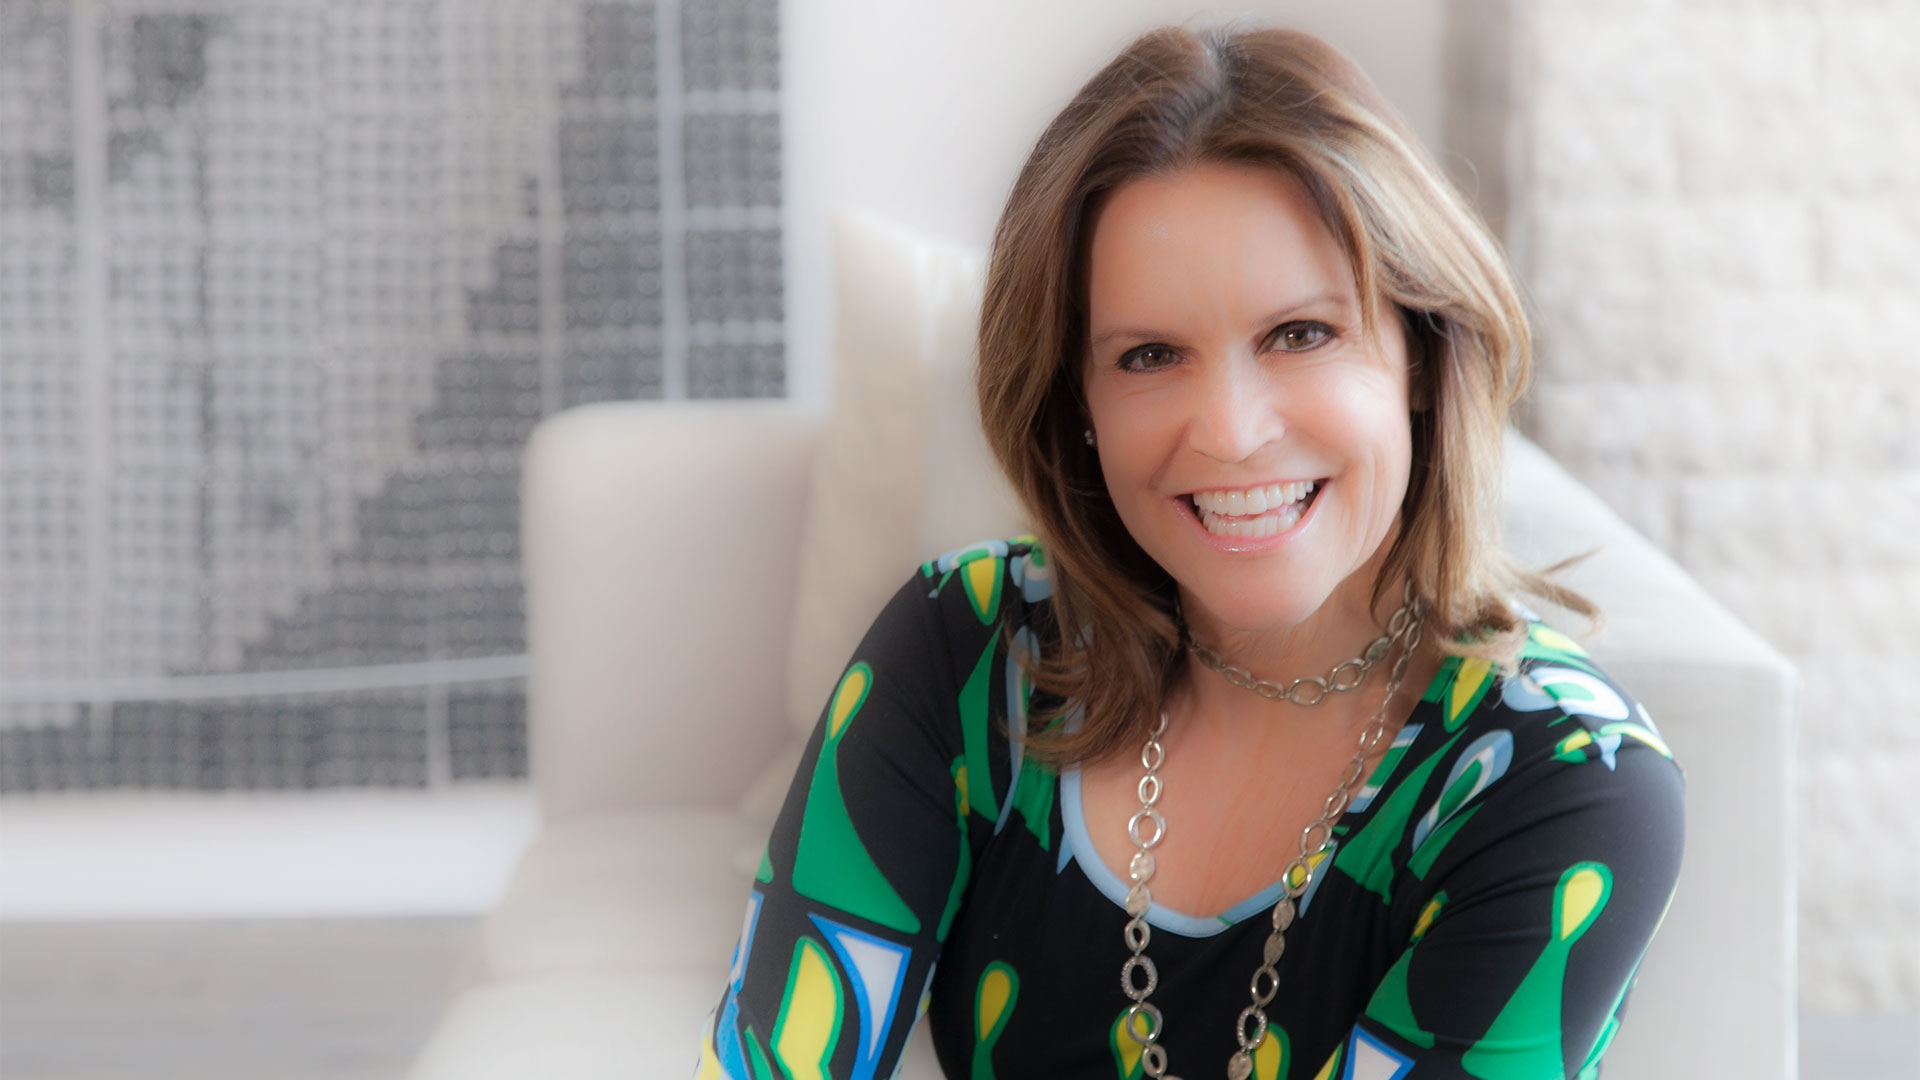 An Entrepreneur at Heart Inspired to Empower Women